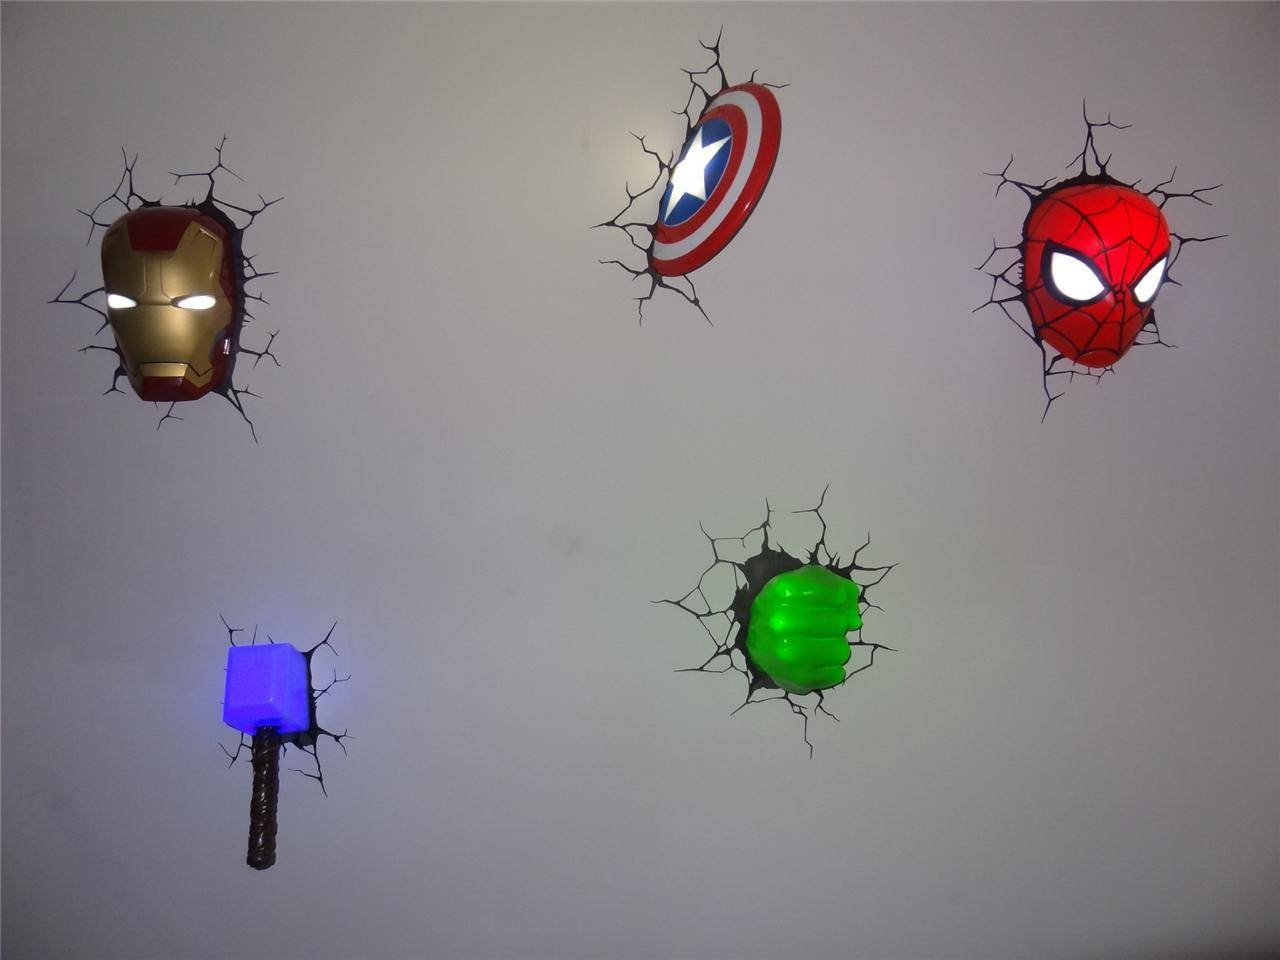 3d Wall Art Captain America Night Light | Wallartideas Within Newest 3d Wall Art Captain America Night Light (View 3 of 20)